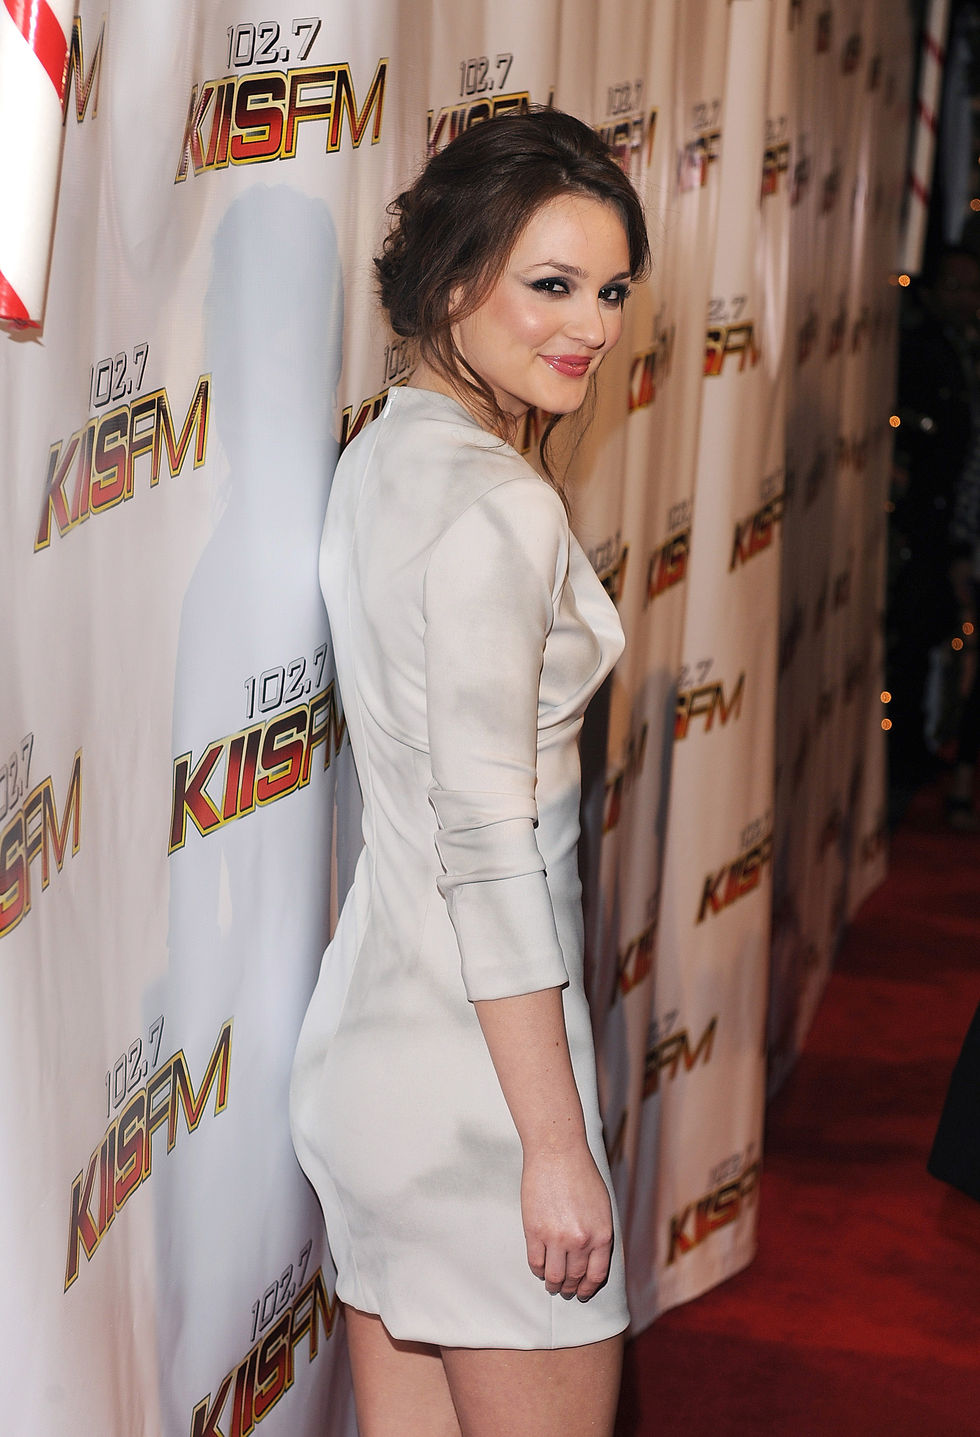 leighton-meester-kiis-fm-jingle-ball-2009-in-los-angeles-01